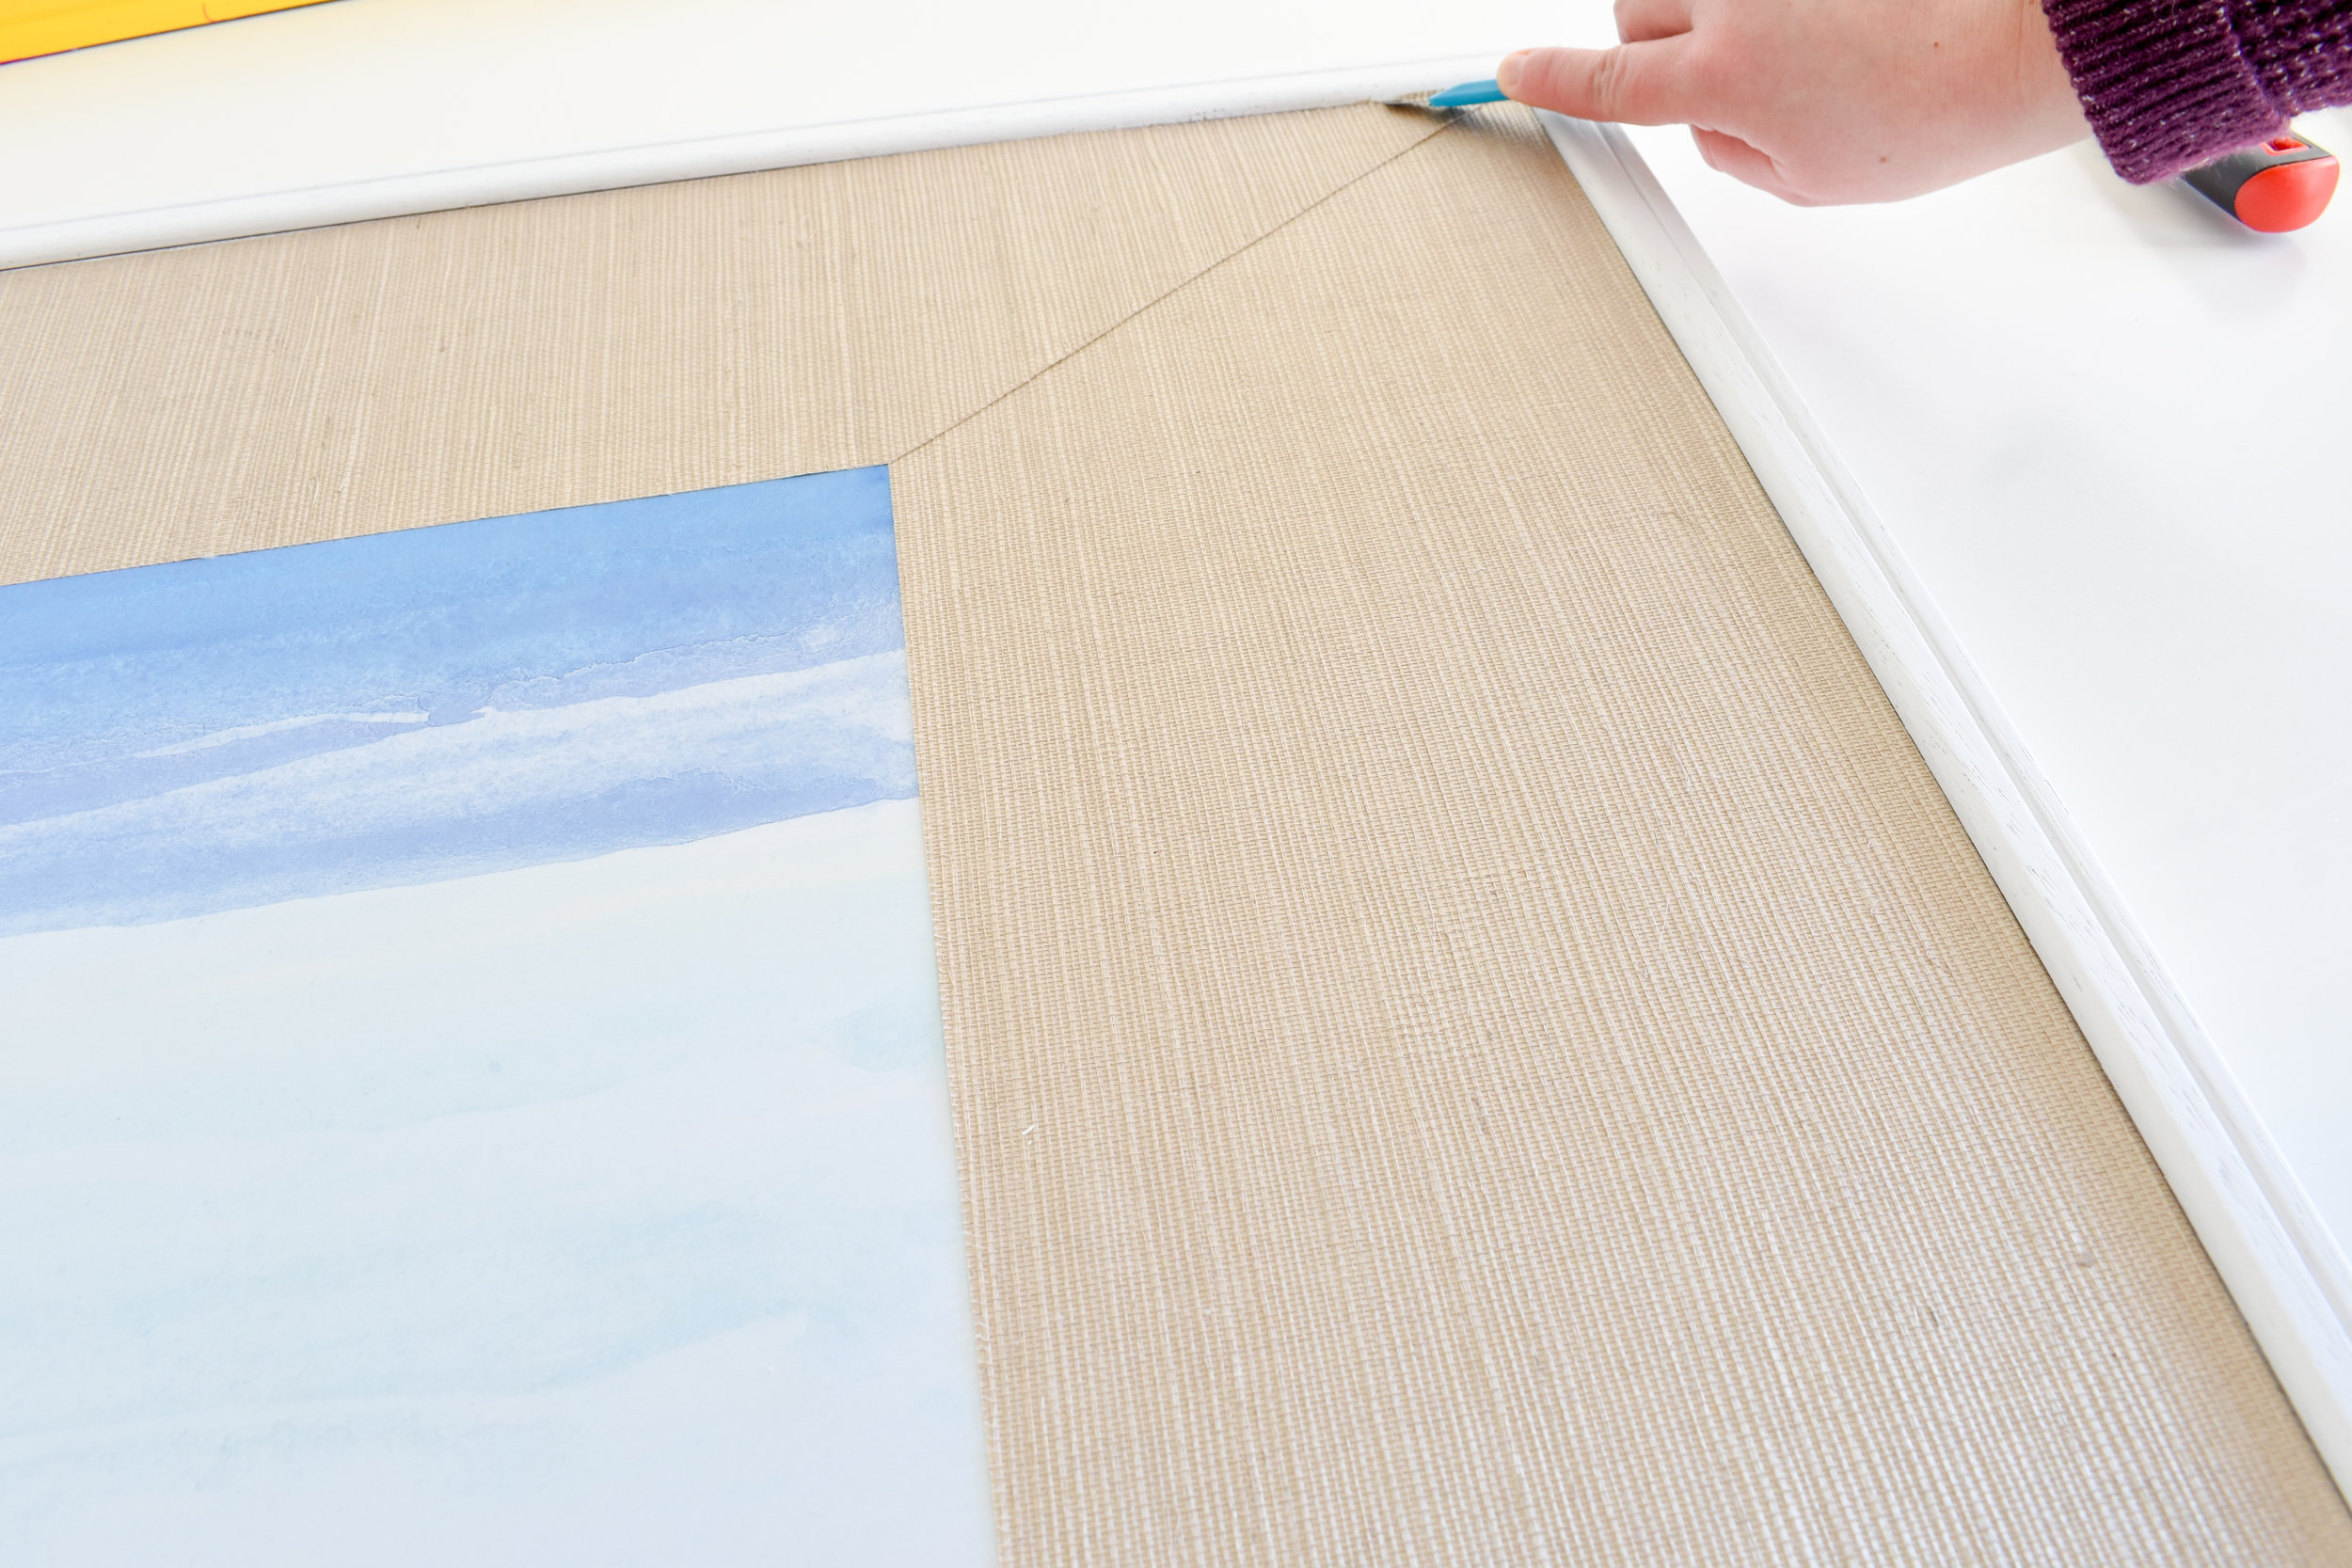 DIY Picture Matting How To Make Custom Grasscloth Picture Mats with Wallpaper Scraps   Wallpaper Leftovers Ideas